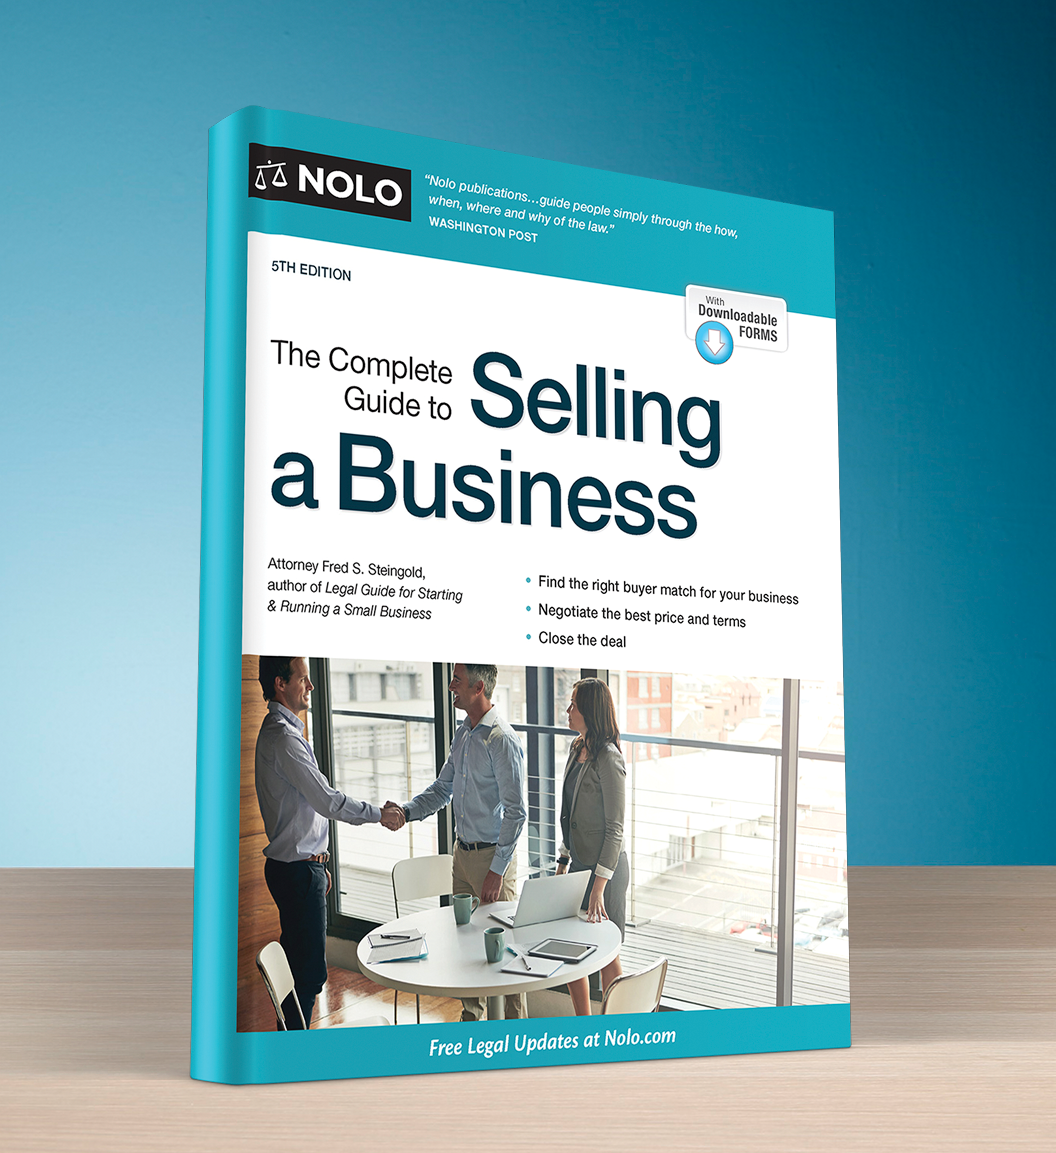 The Complete Guide to Selling a Business (5th edition) - #4751